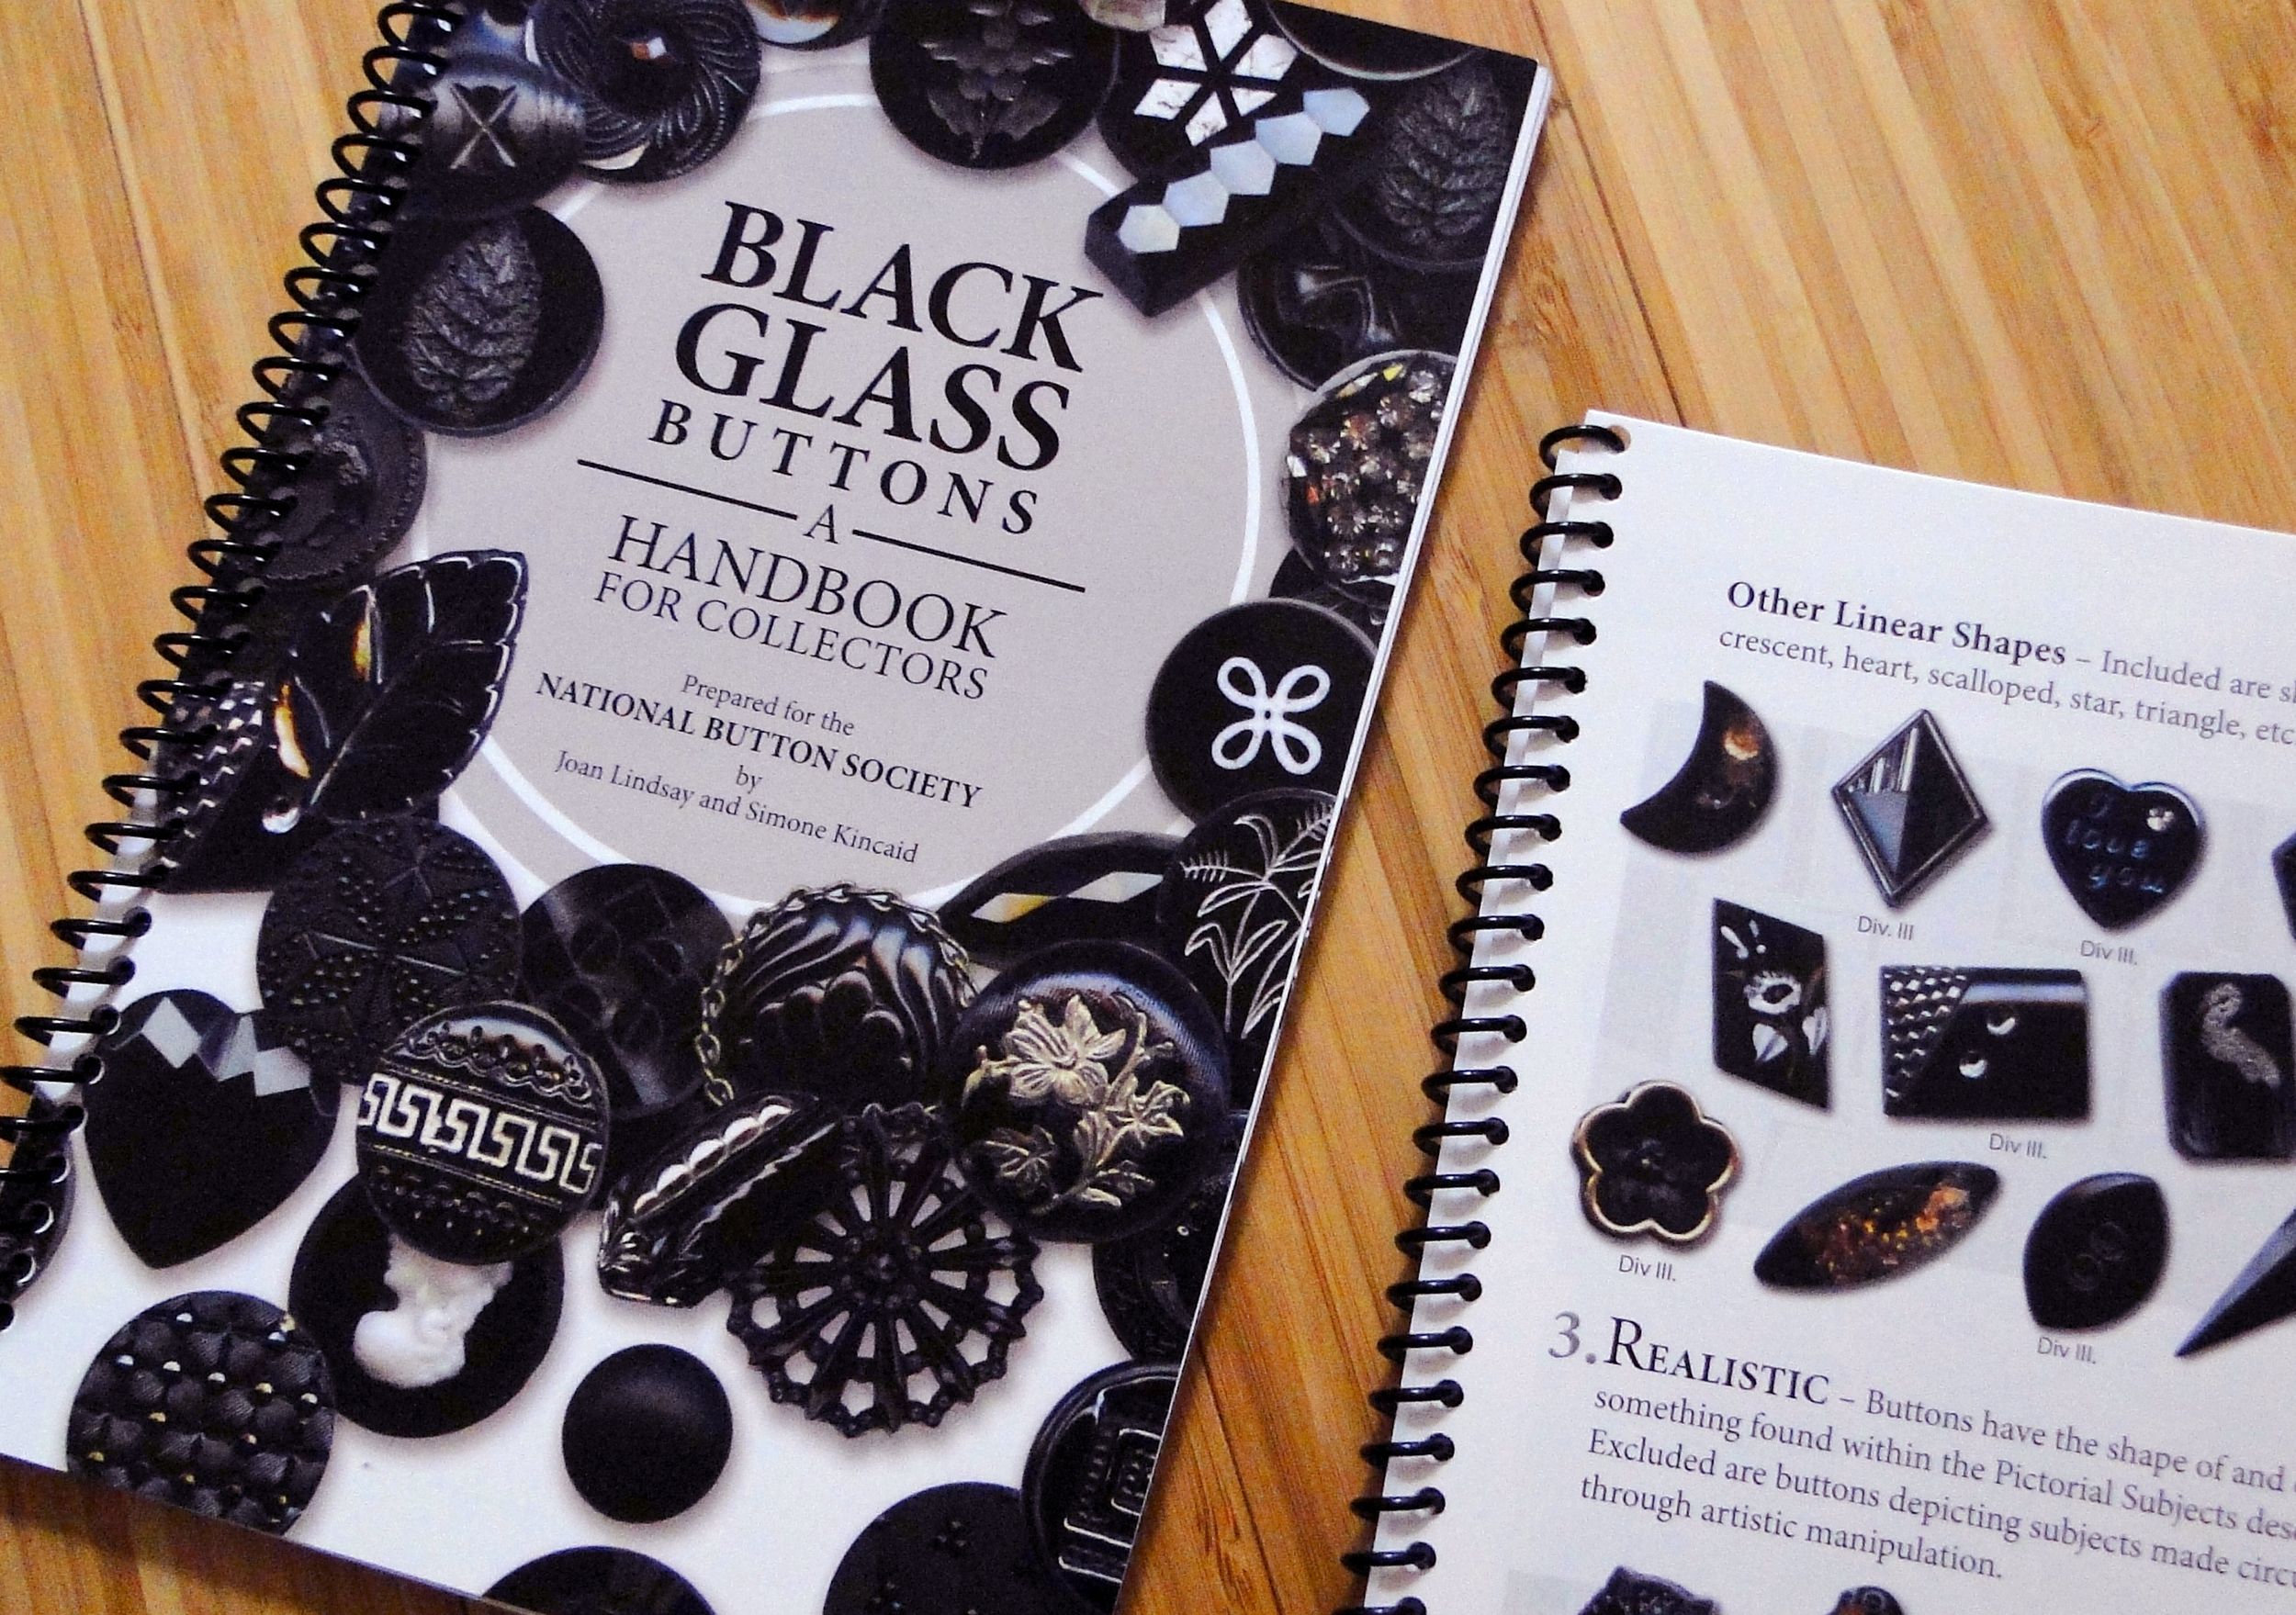 Black Glass Buttons: A Handbook for Collectors